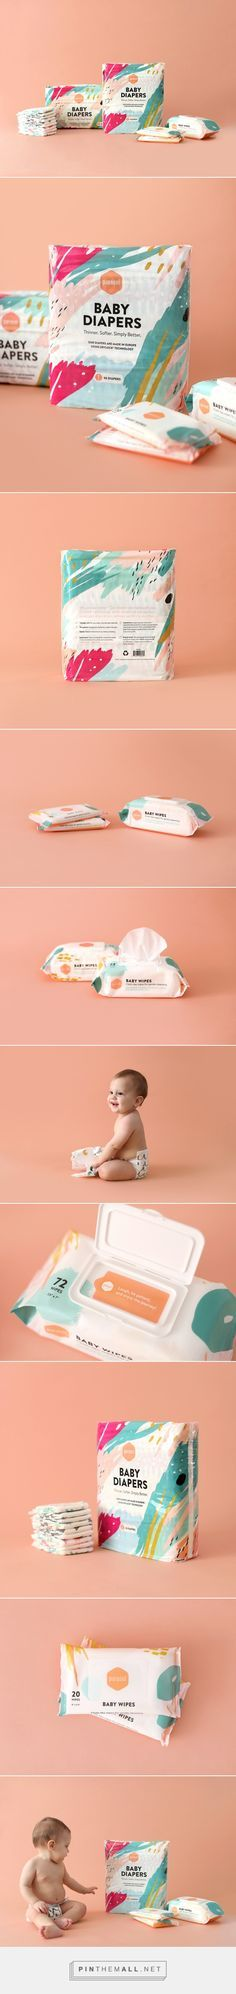 Parasol Co Diaper Subscription Packaging by James Prunean on Behance | Fivestar